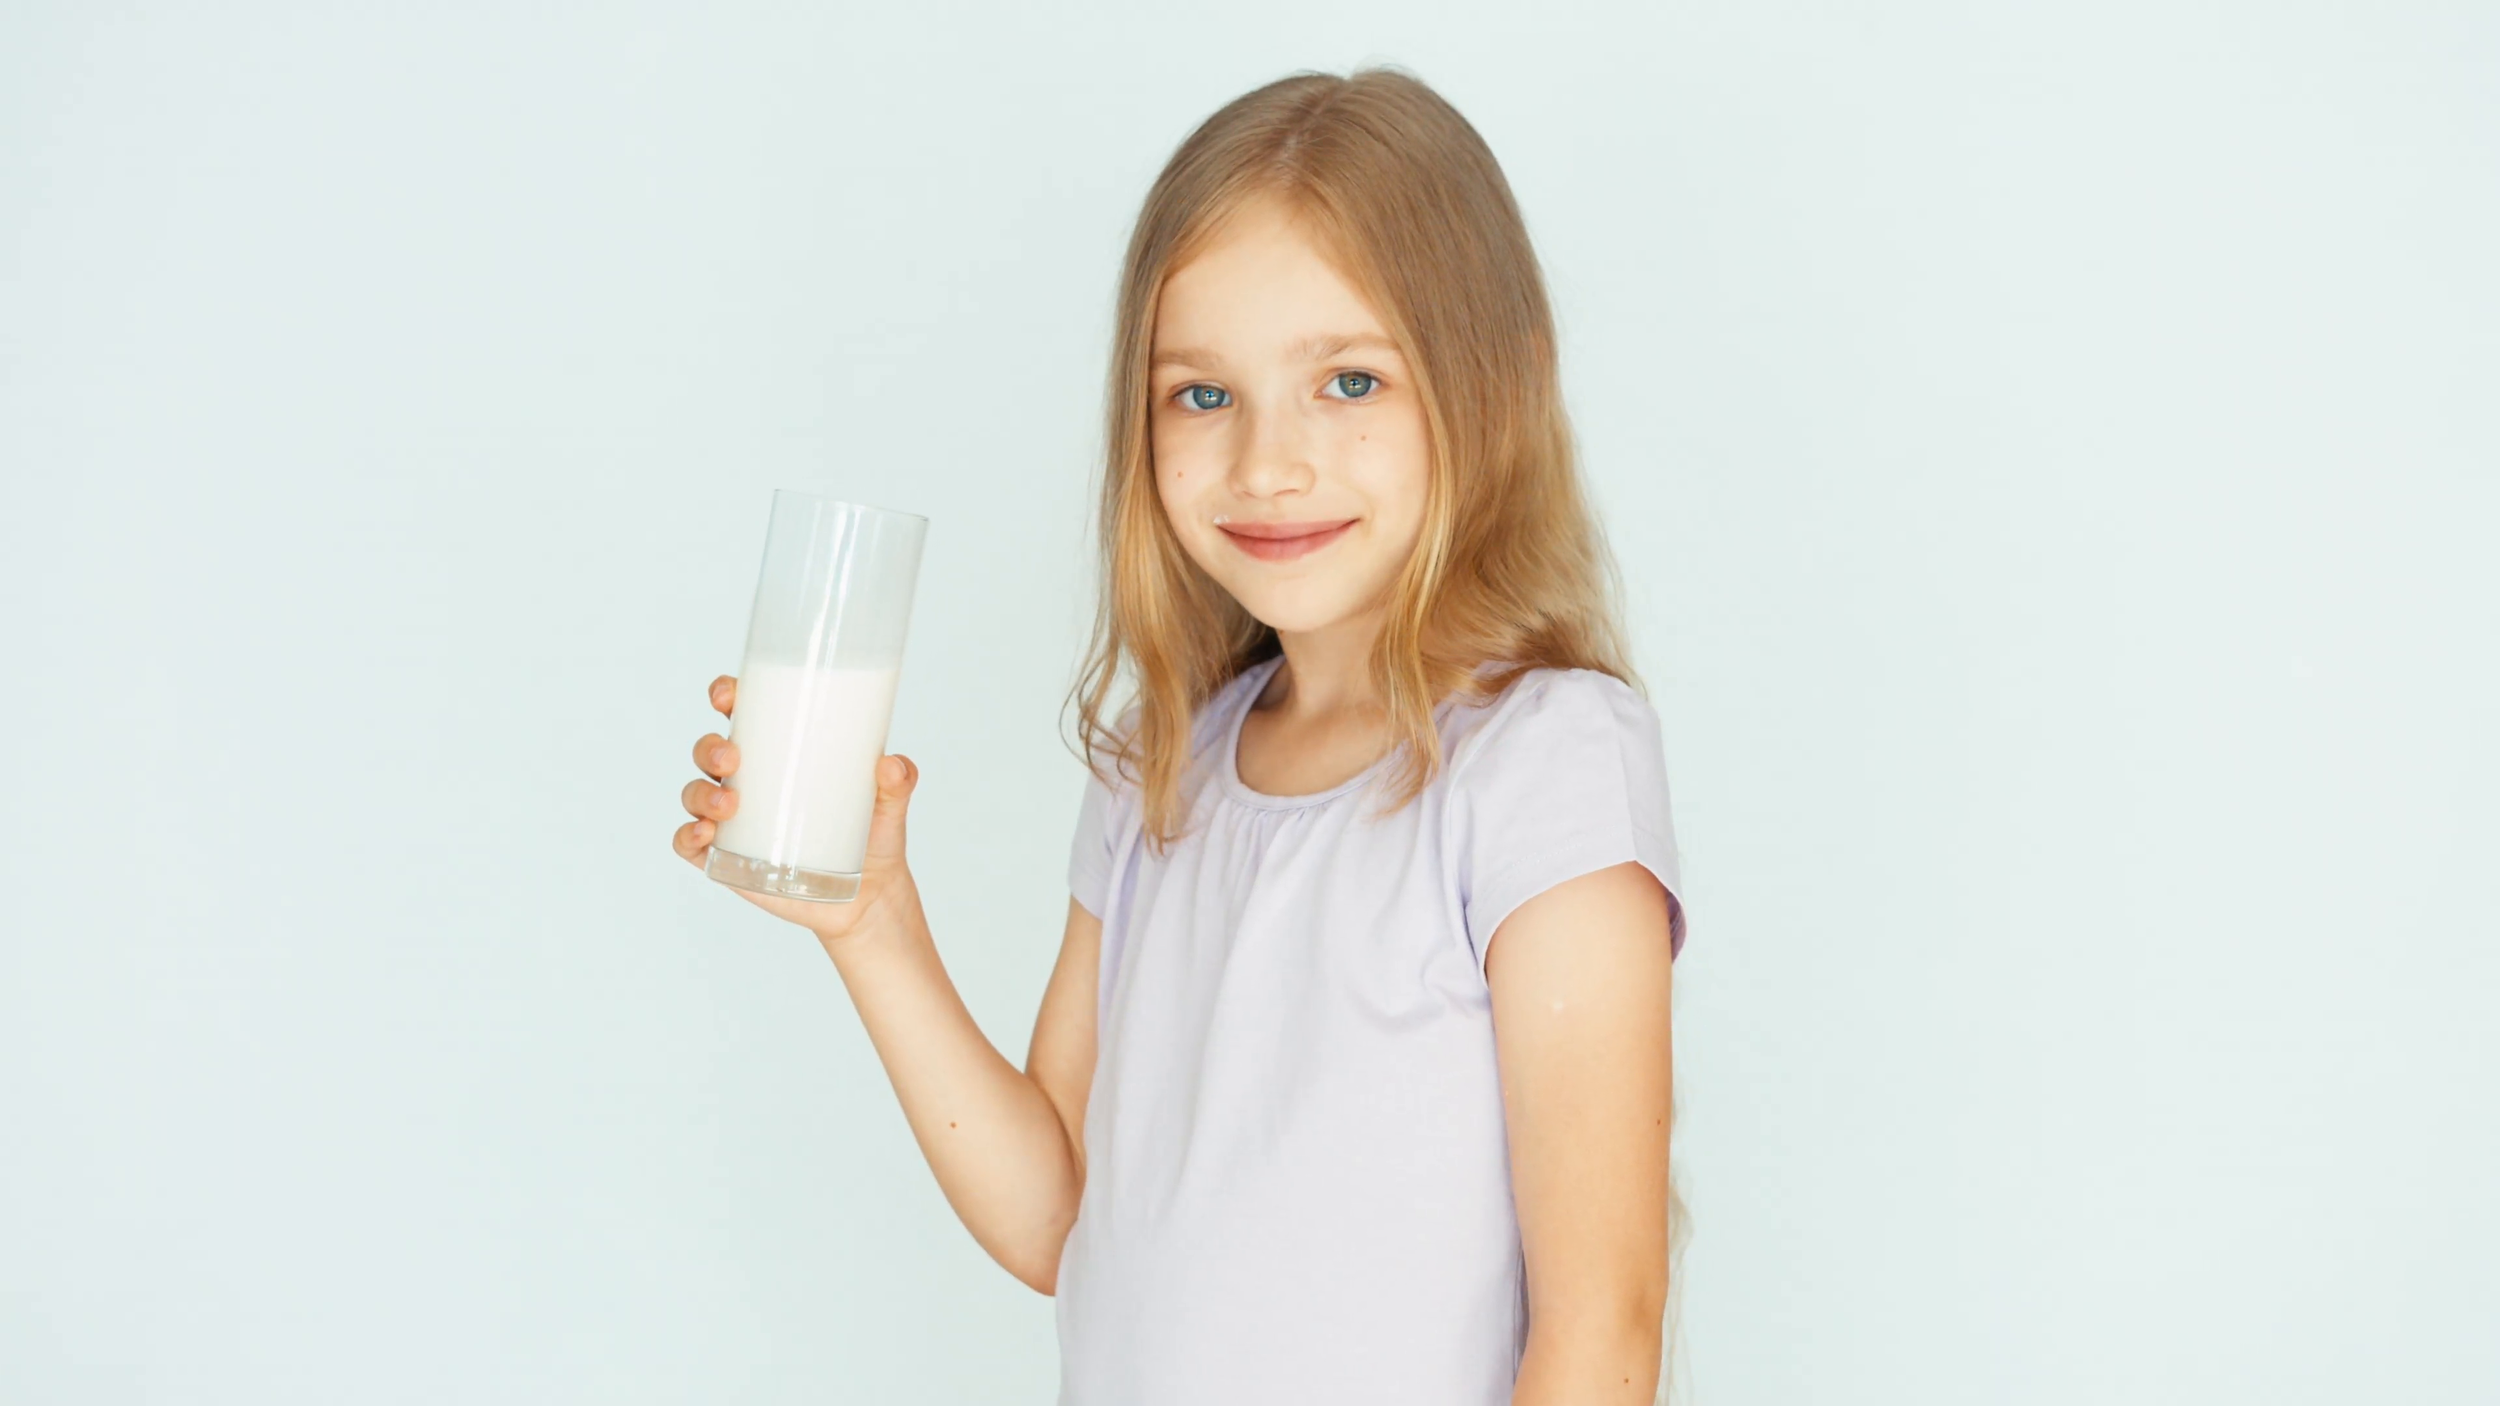 milk-mustache-child-drinking-milk-girl-with-beautiful-blond-hair-on-a-white_nygrlisvg__F0000.png